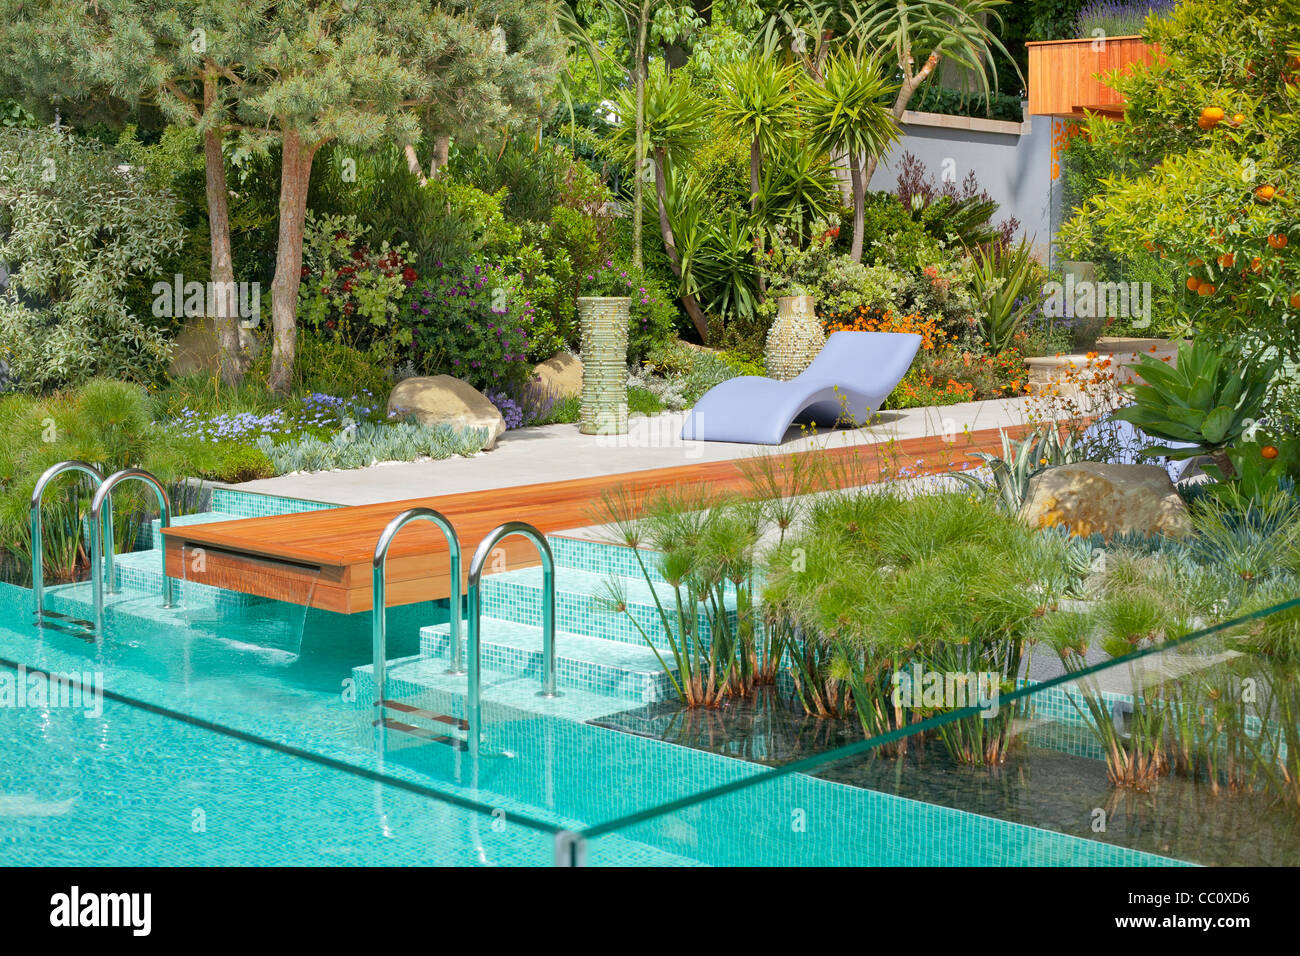 moderne gartengestaltung mit einem swimming pool im mediterranen stil stockfoto bild 41817362. Black Bedroom Furniture Sets. Home Design Ideas